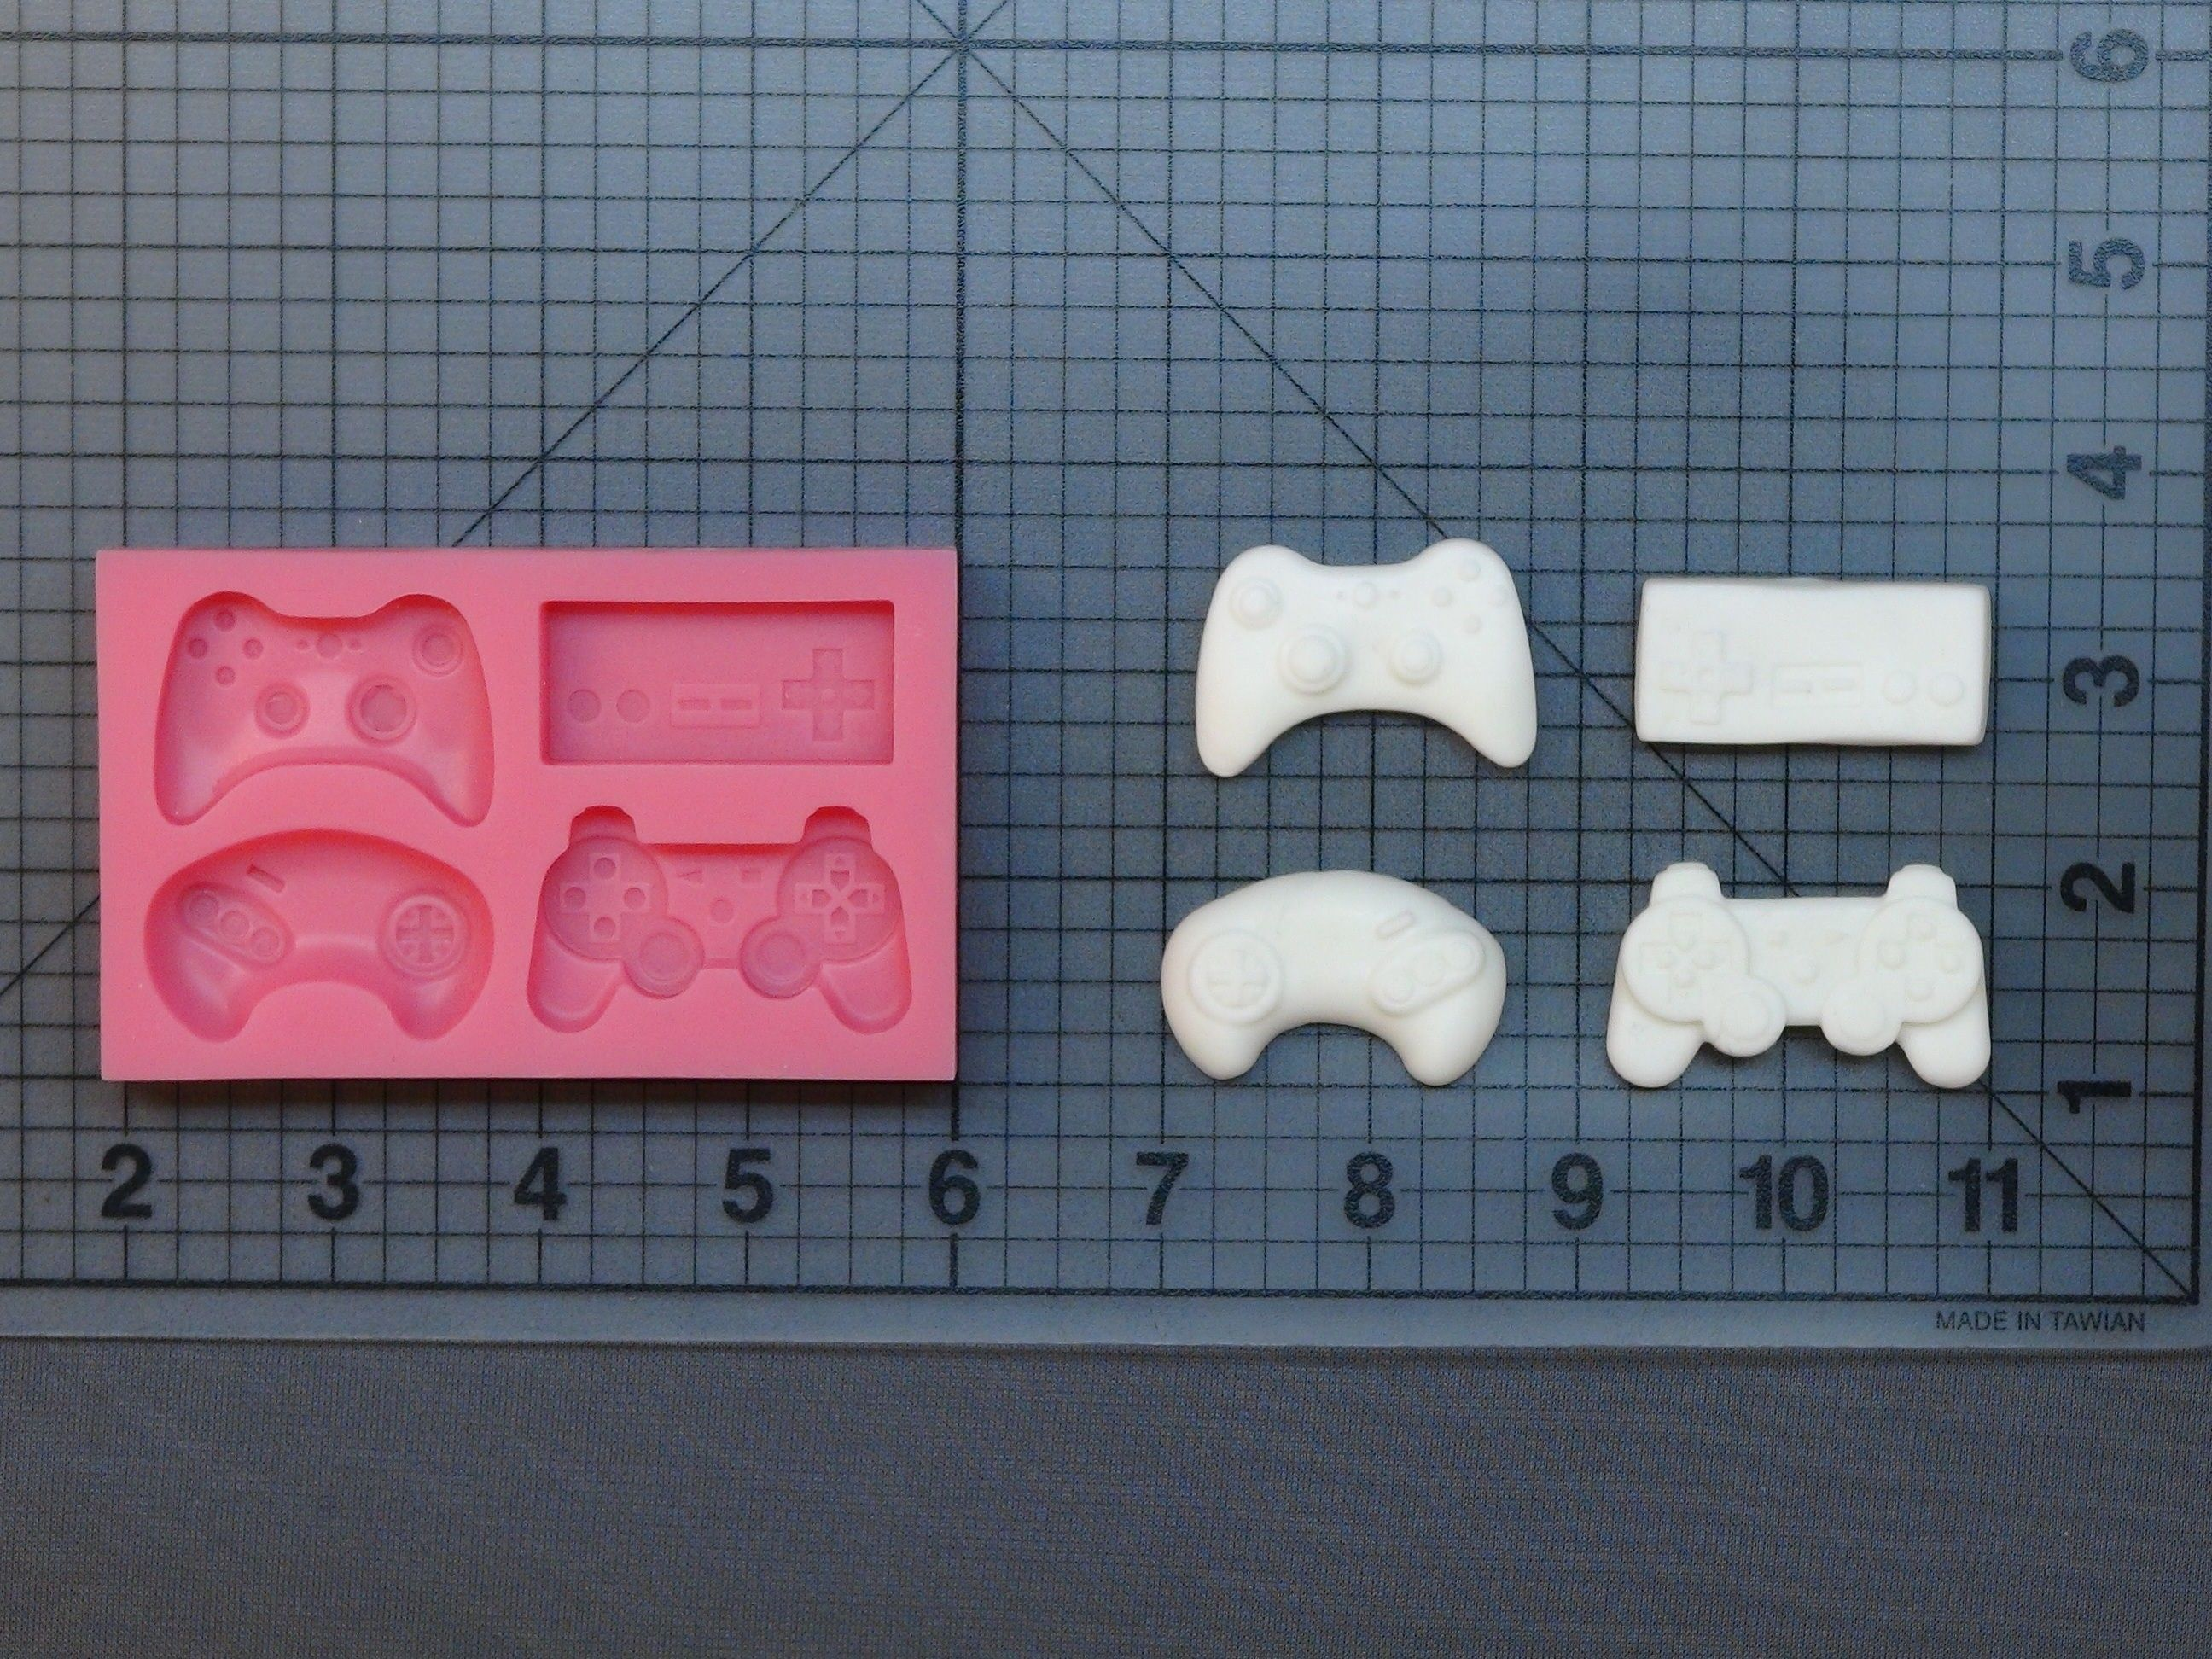 Pin on Silicone Molds and Cake Decorating Tools